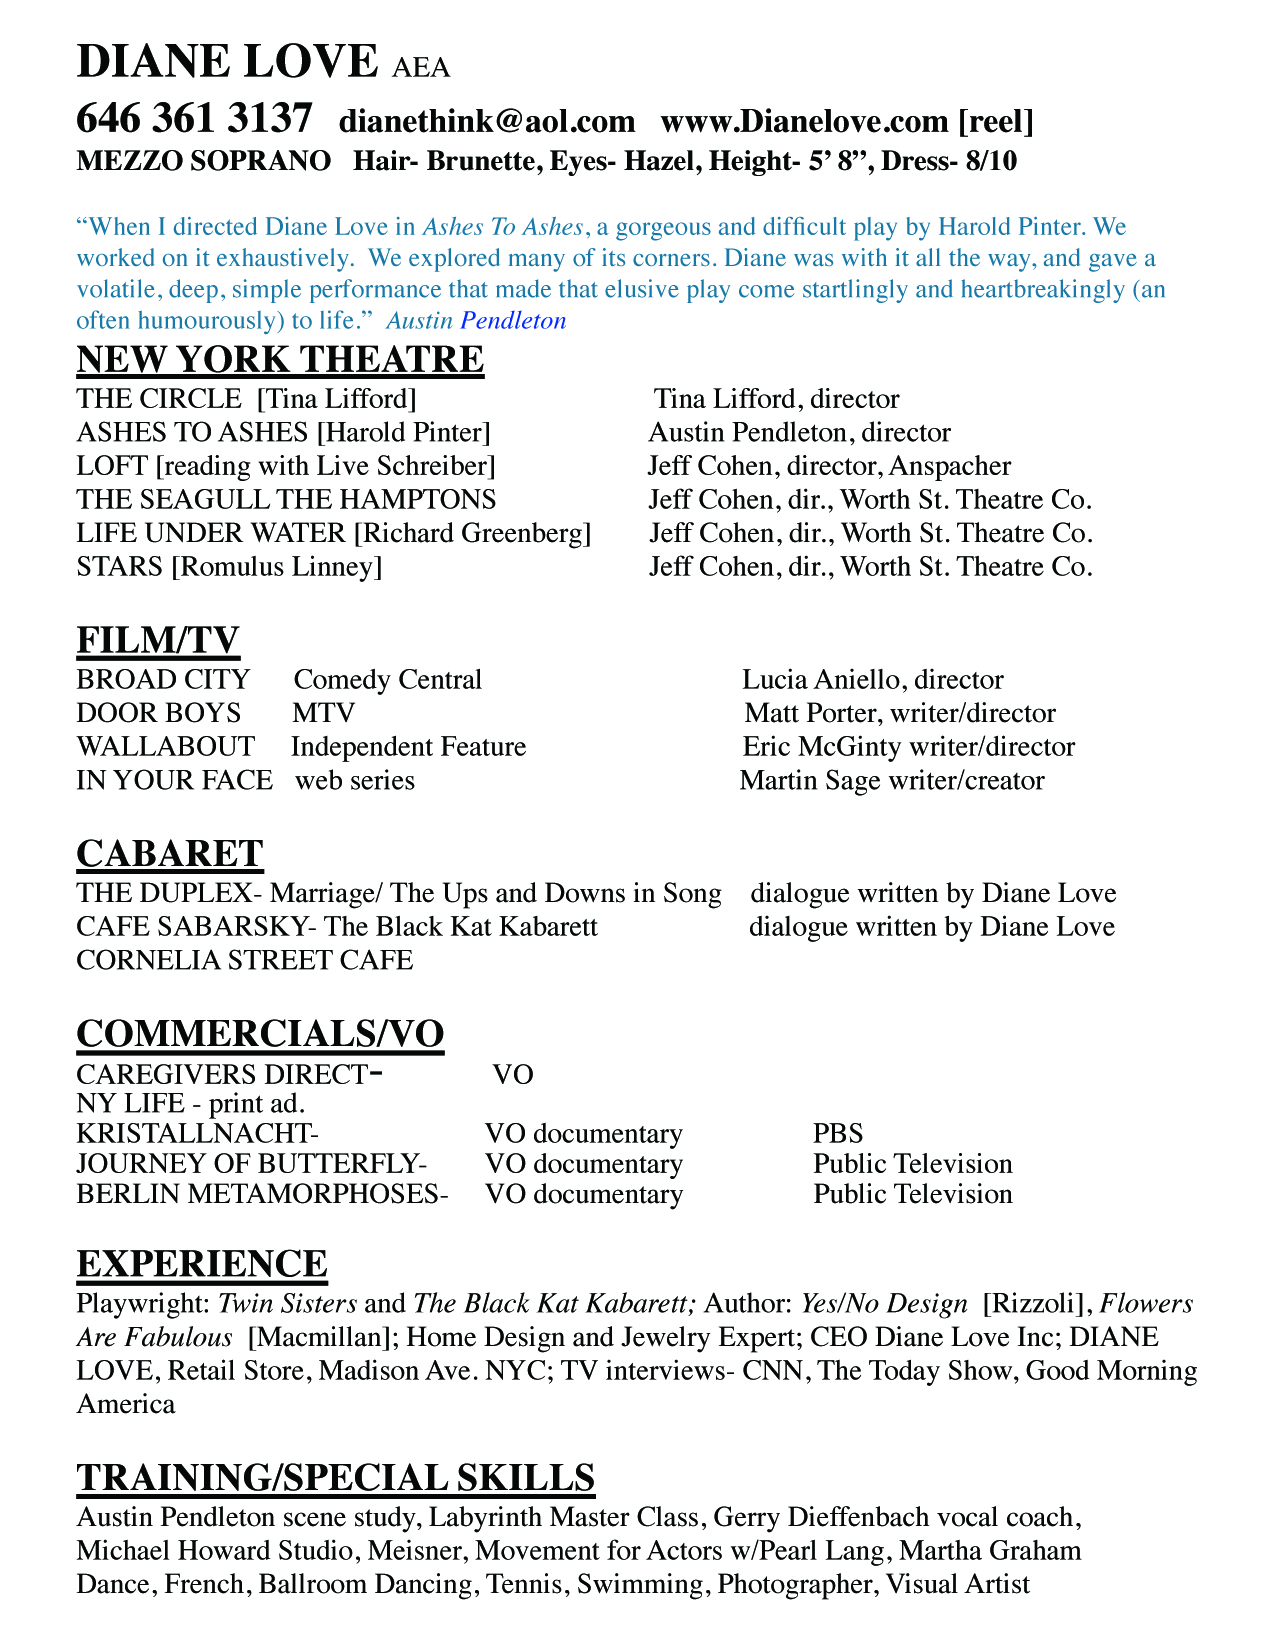 DIANE LOVE ACTING RESUME 2019   pdf -01.jpg